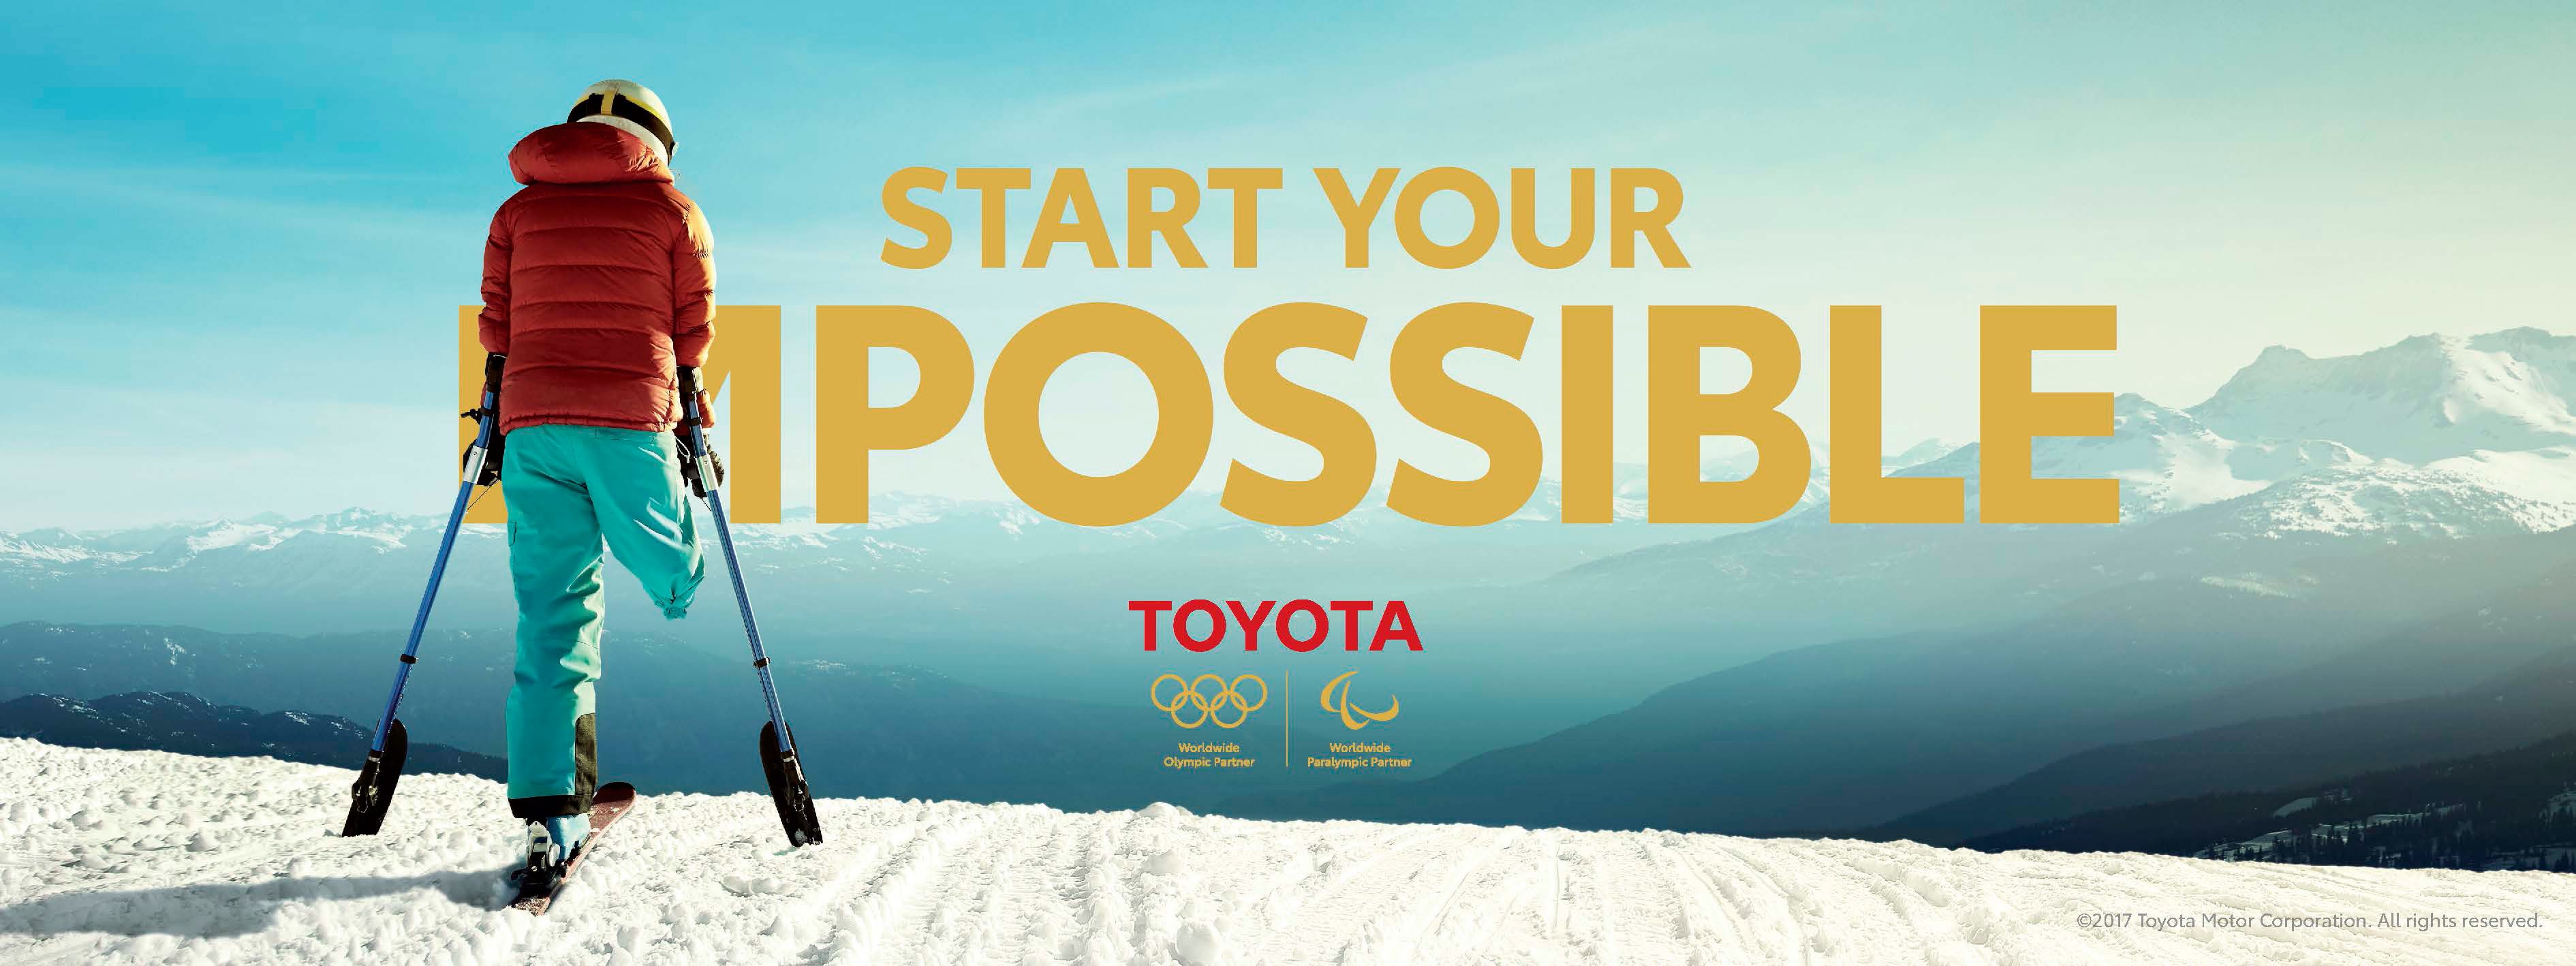 """Team Toyota takes """"Start Your Impossible"""" to global stage at PyeongChang 2018"""